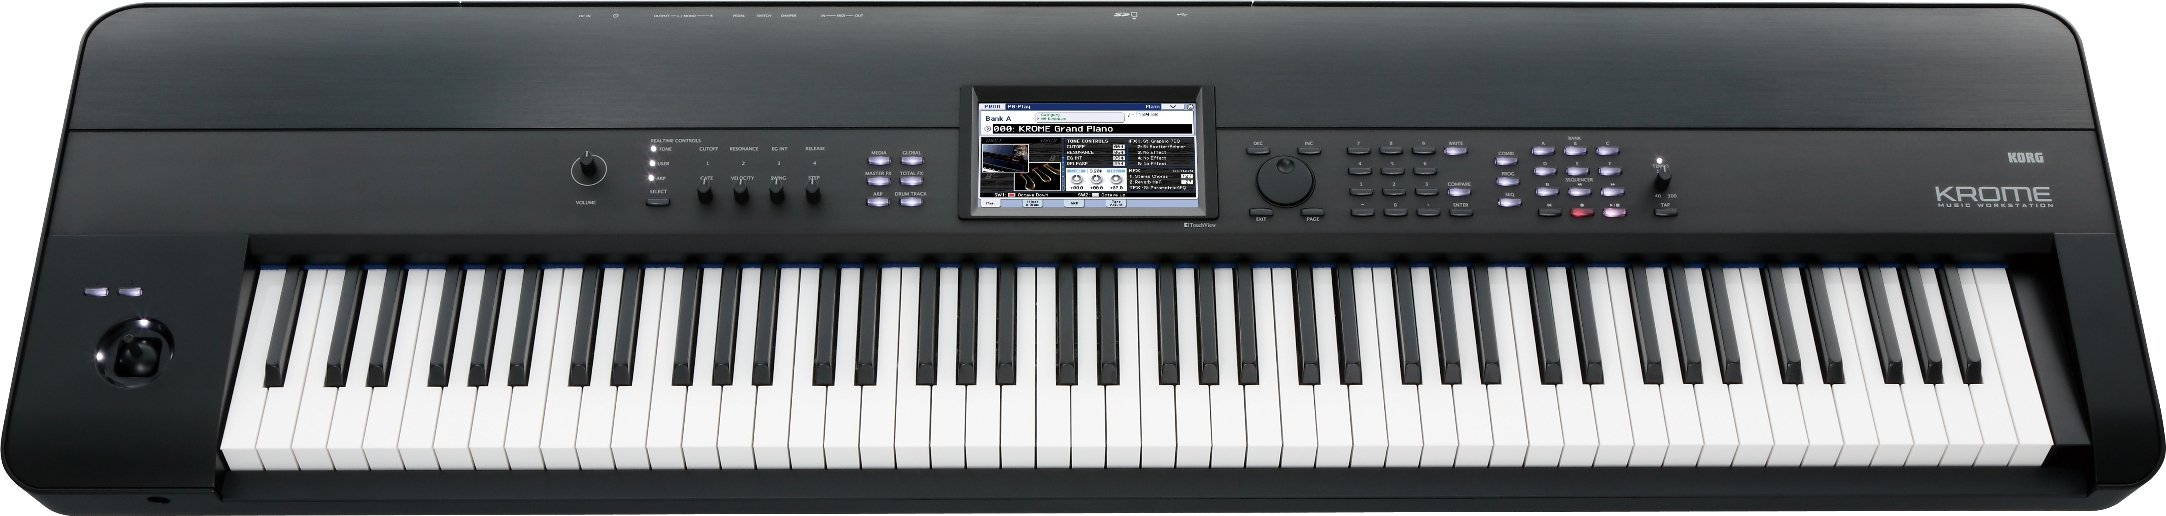 2. Korg KROME 88-Key Music Workstation Keyboard & Synthesizer